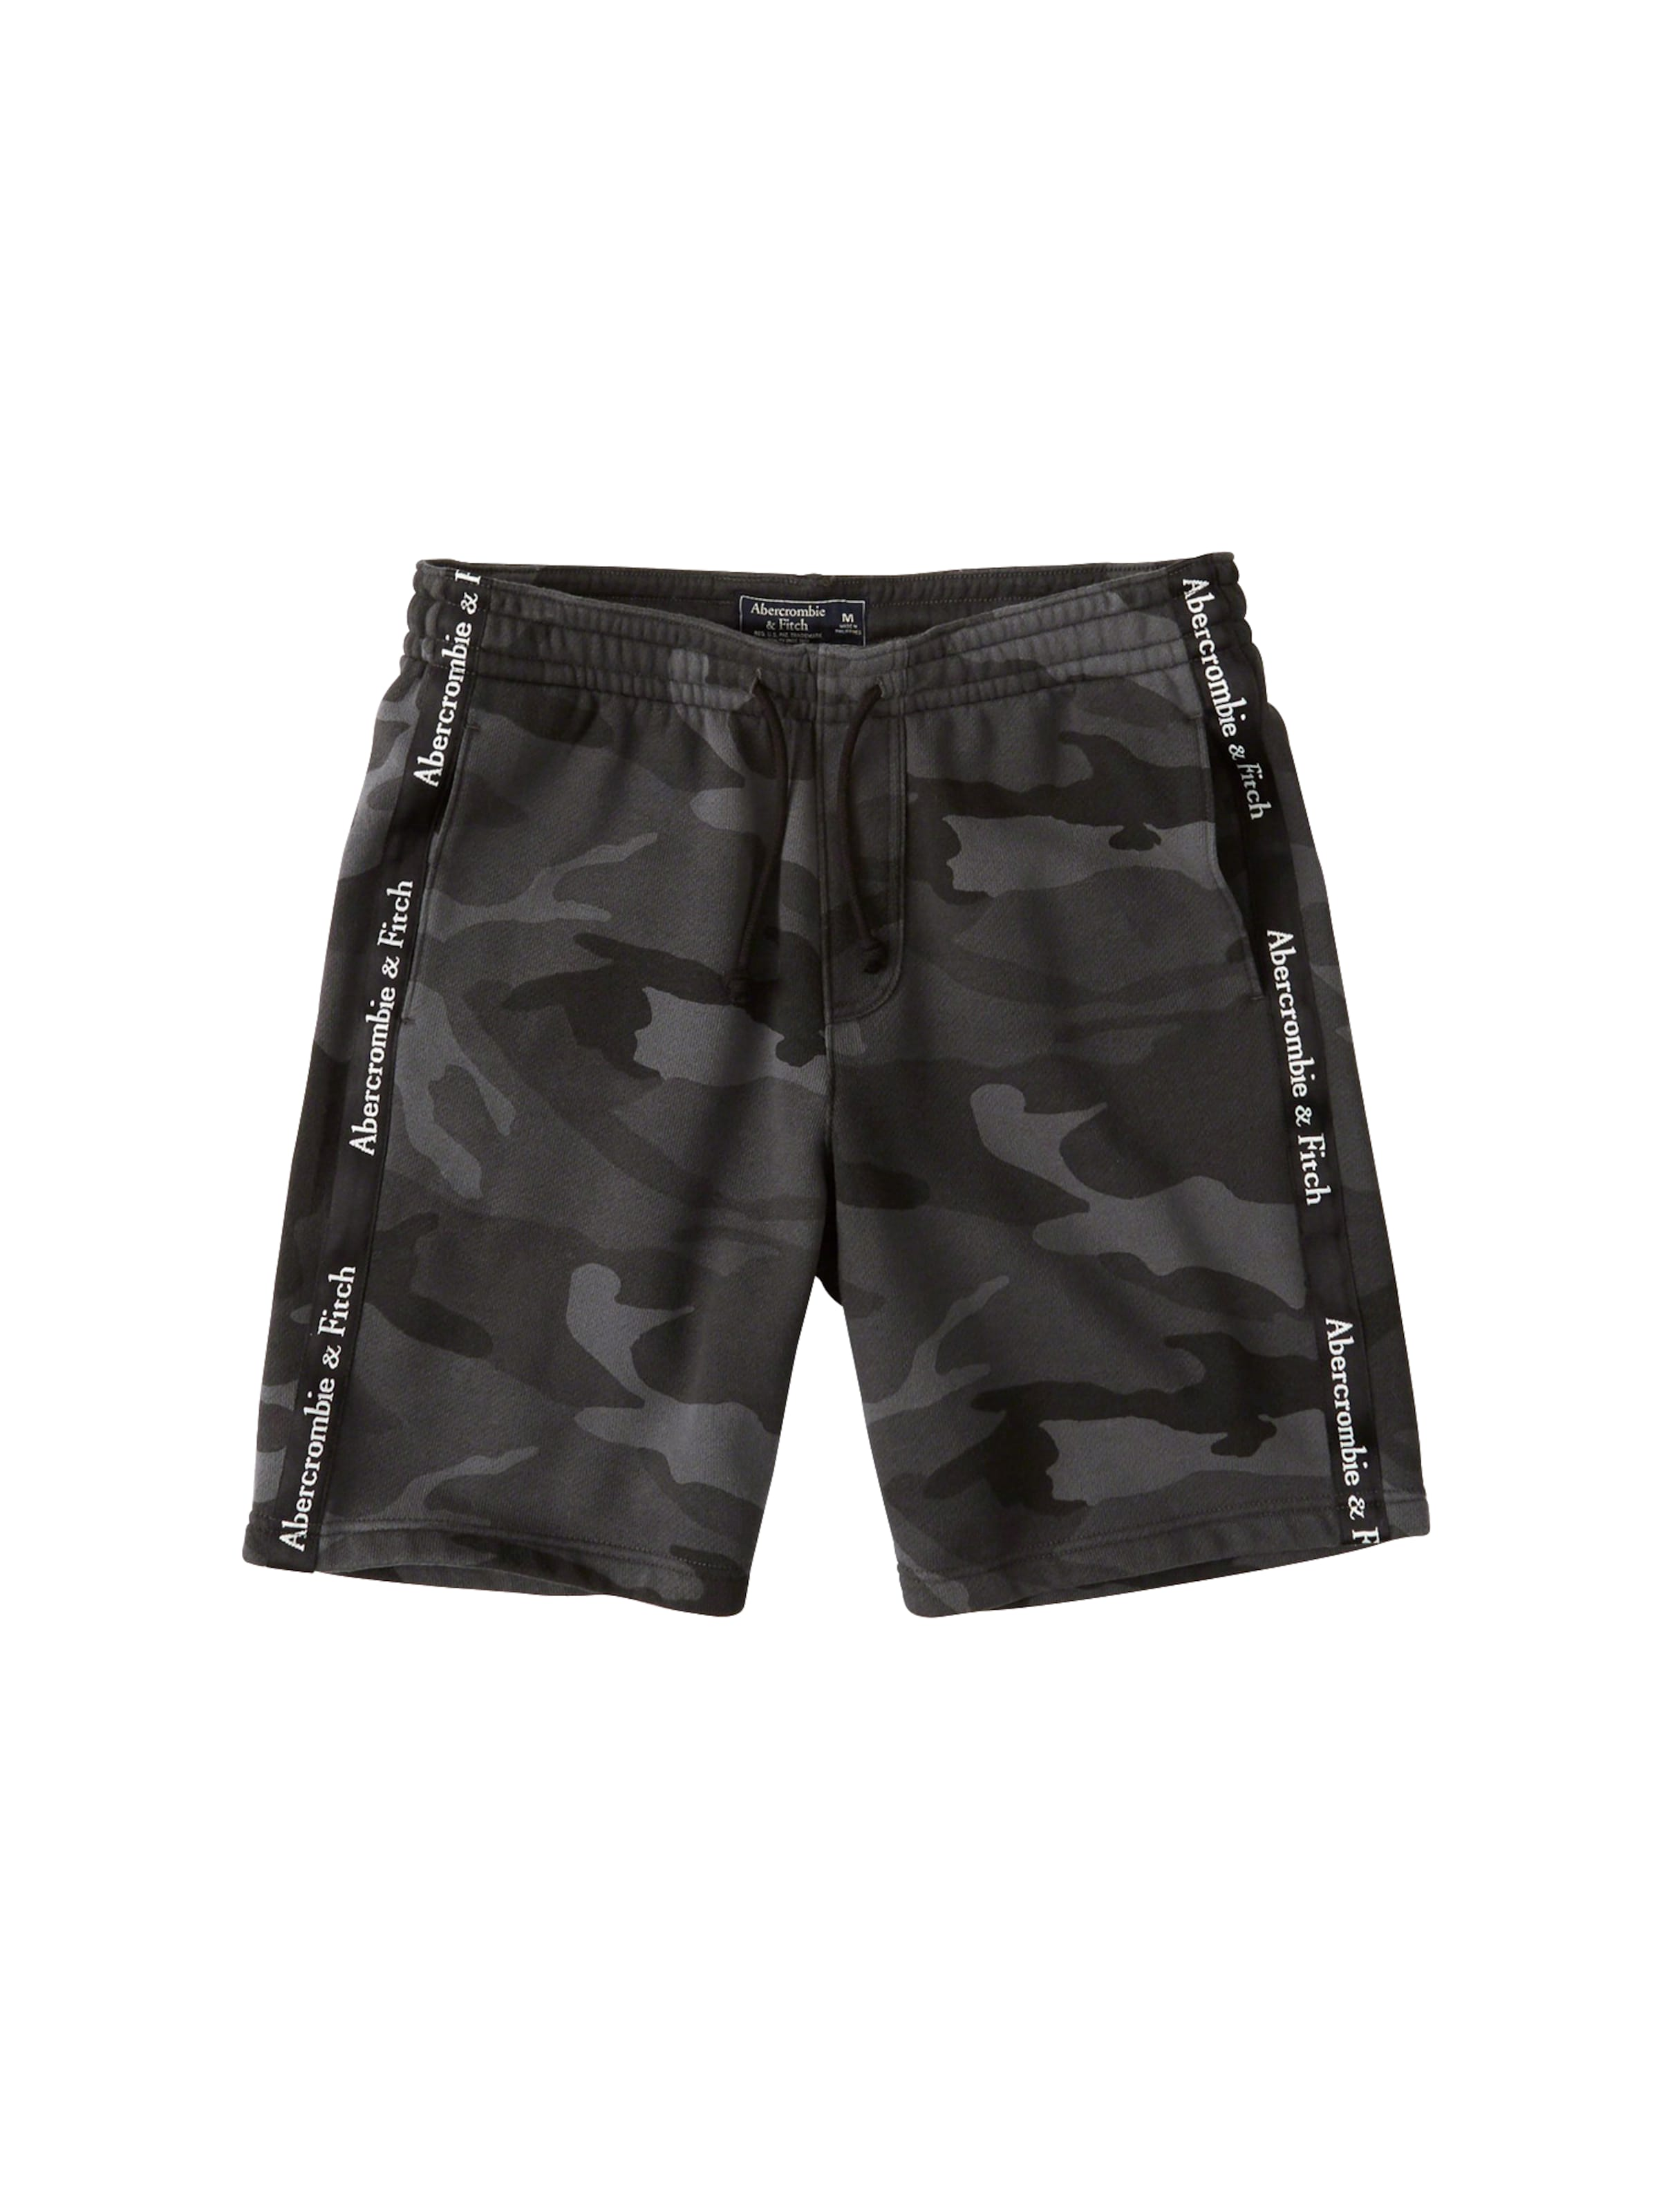 R06' In AnthrazitSchwarz 'camo Abercrombieamp; Shorts Fitch 4RL3A5j